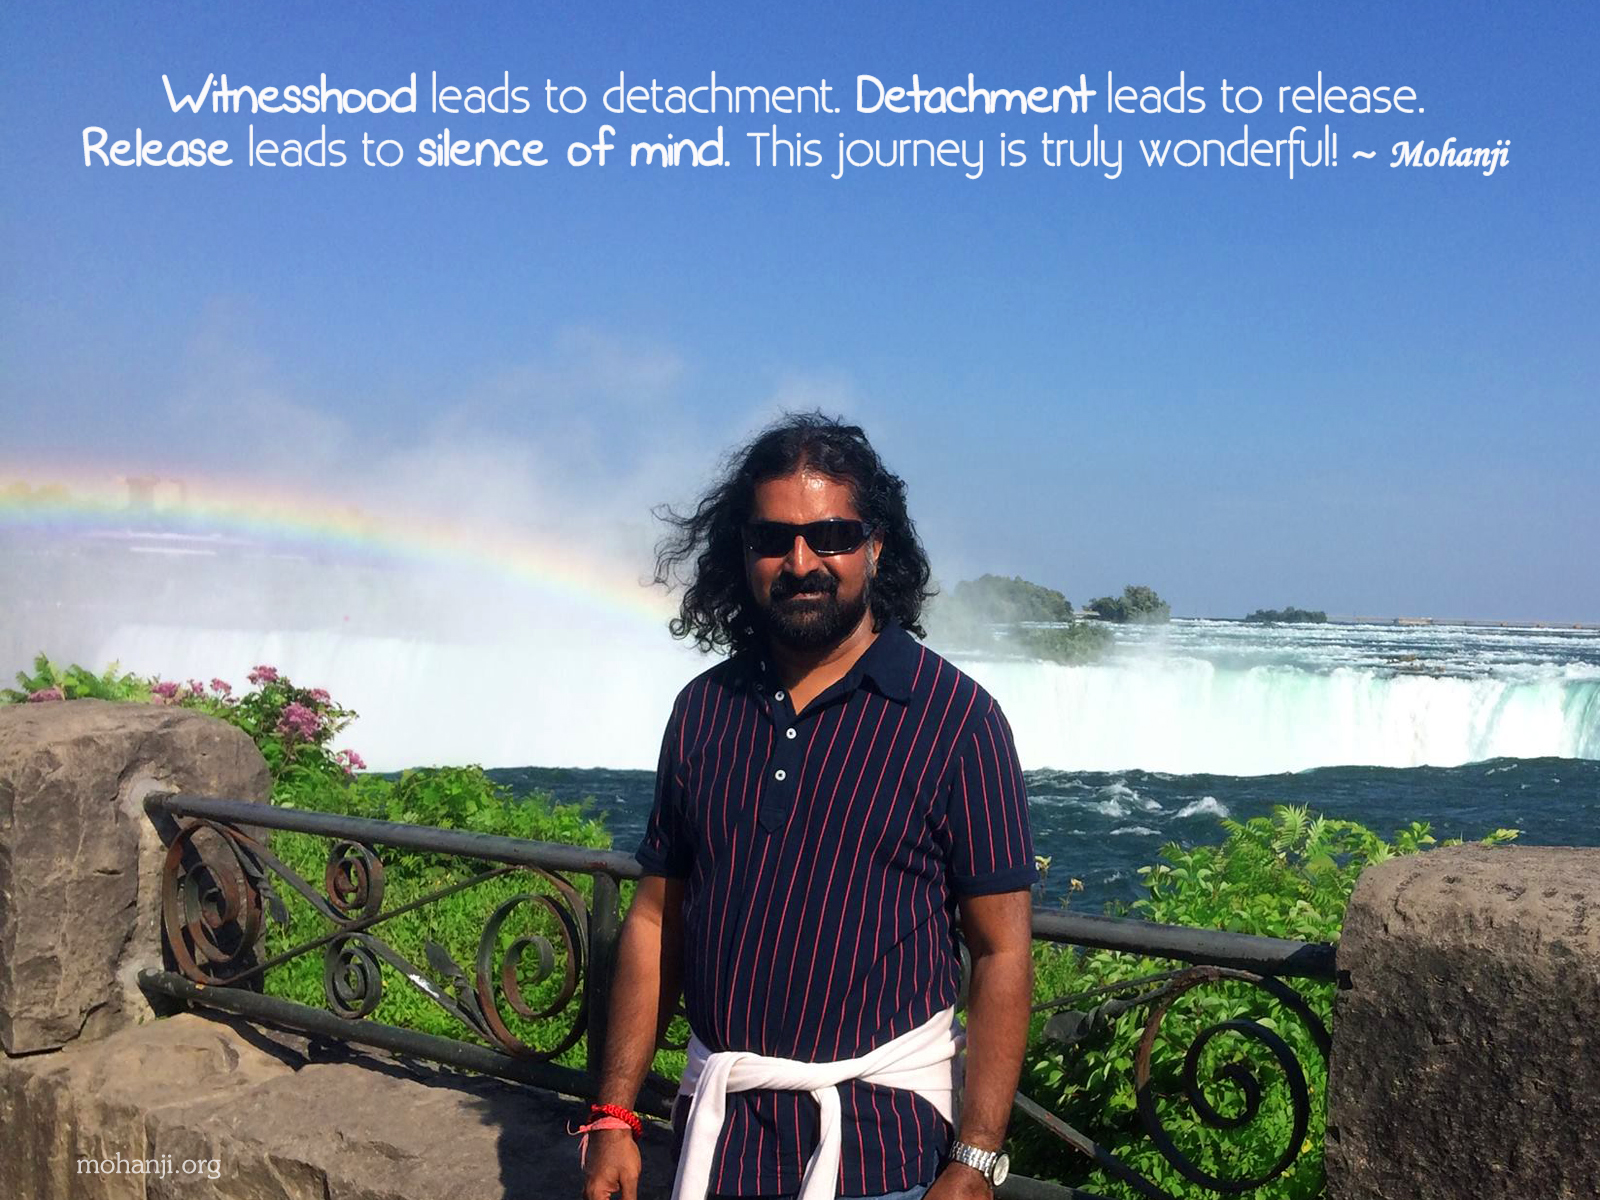 mohanji-quote-witnesshood-leads-to-detachment